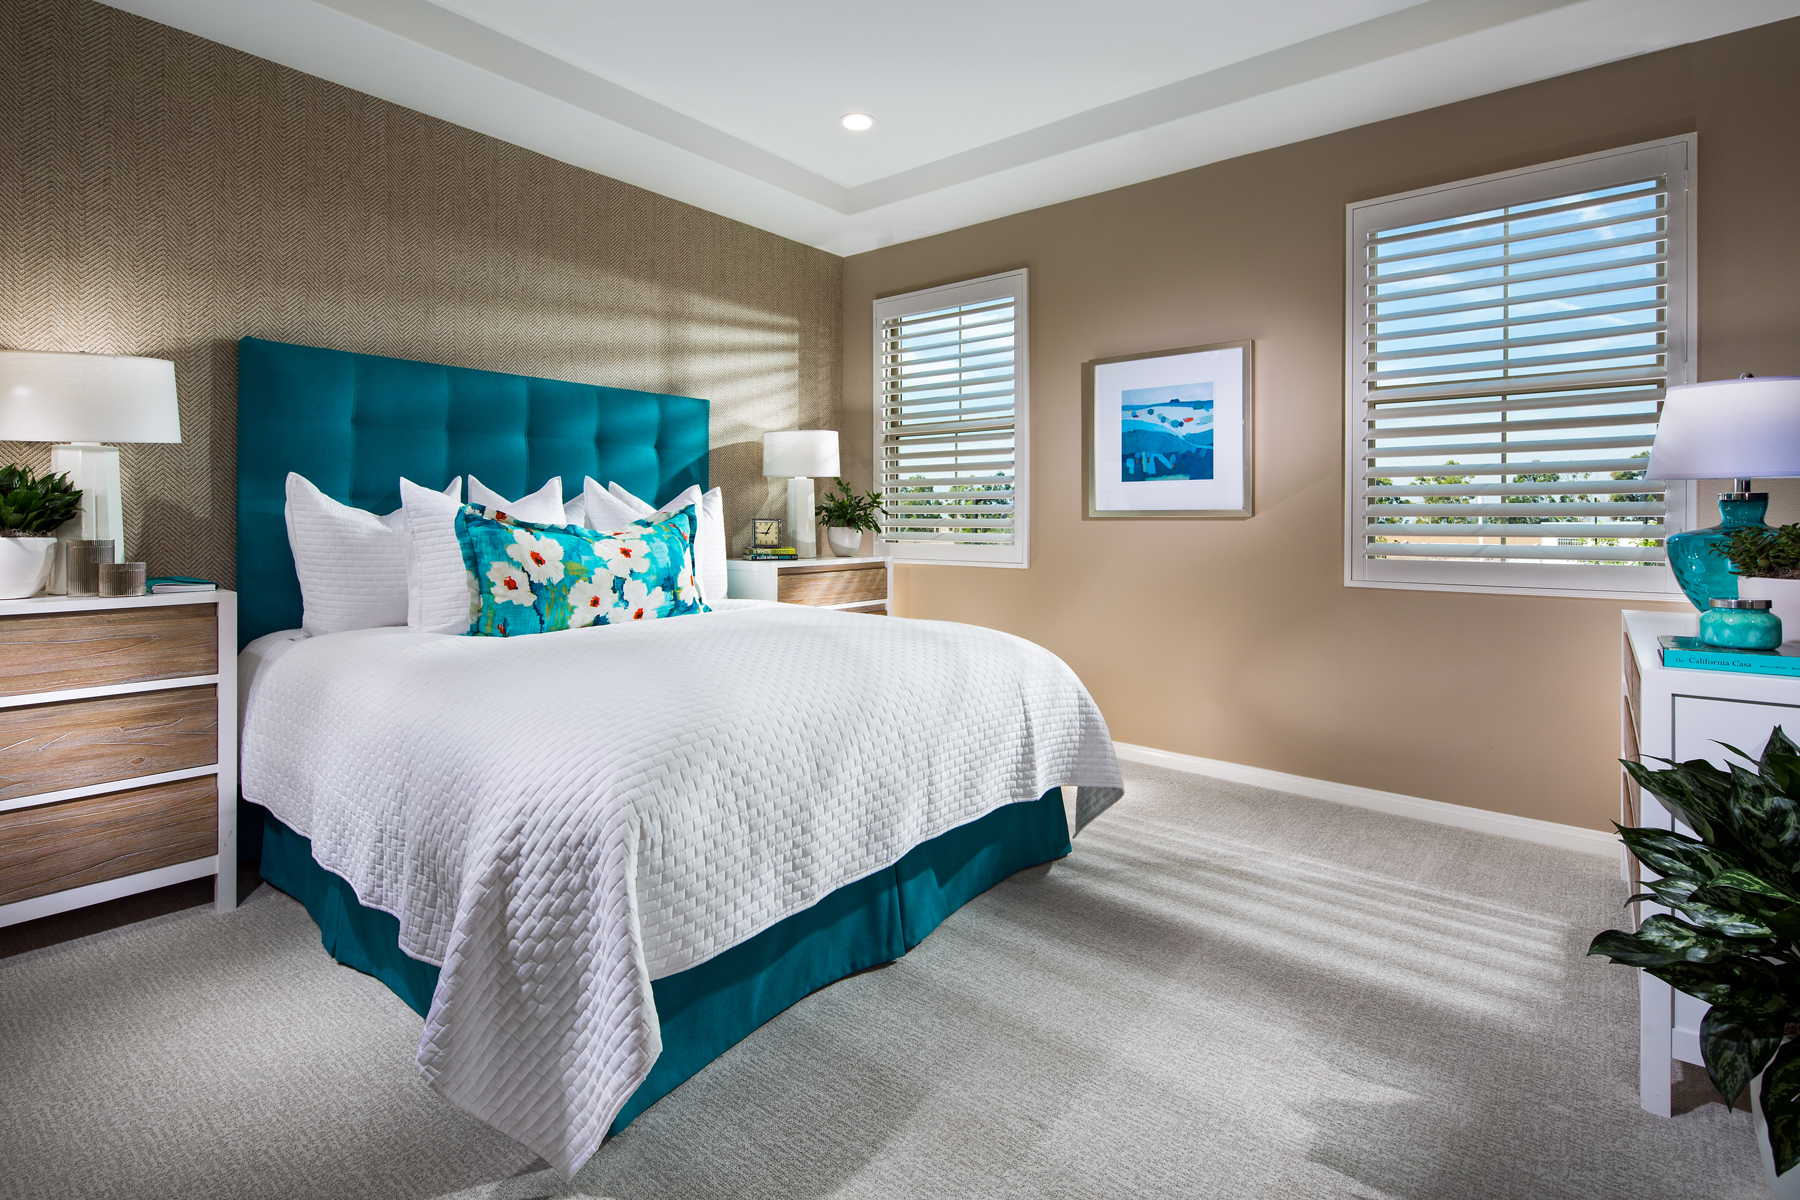 Plan 2 Master Bedroom